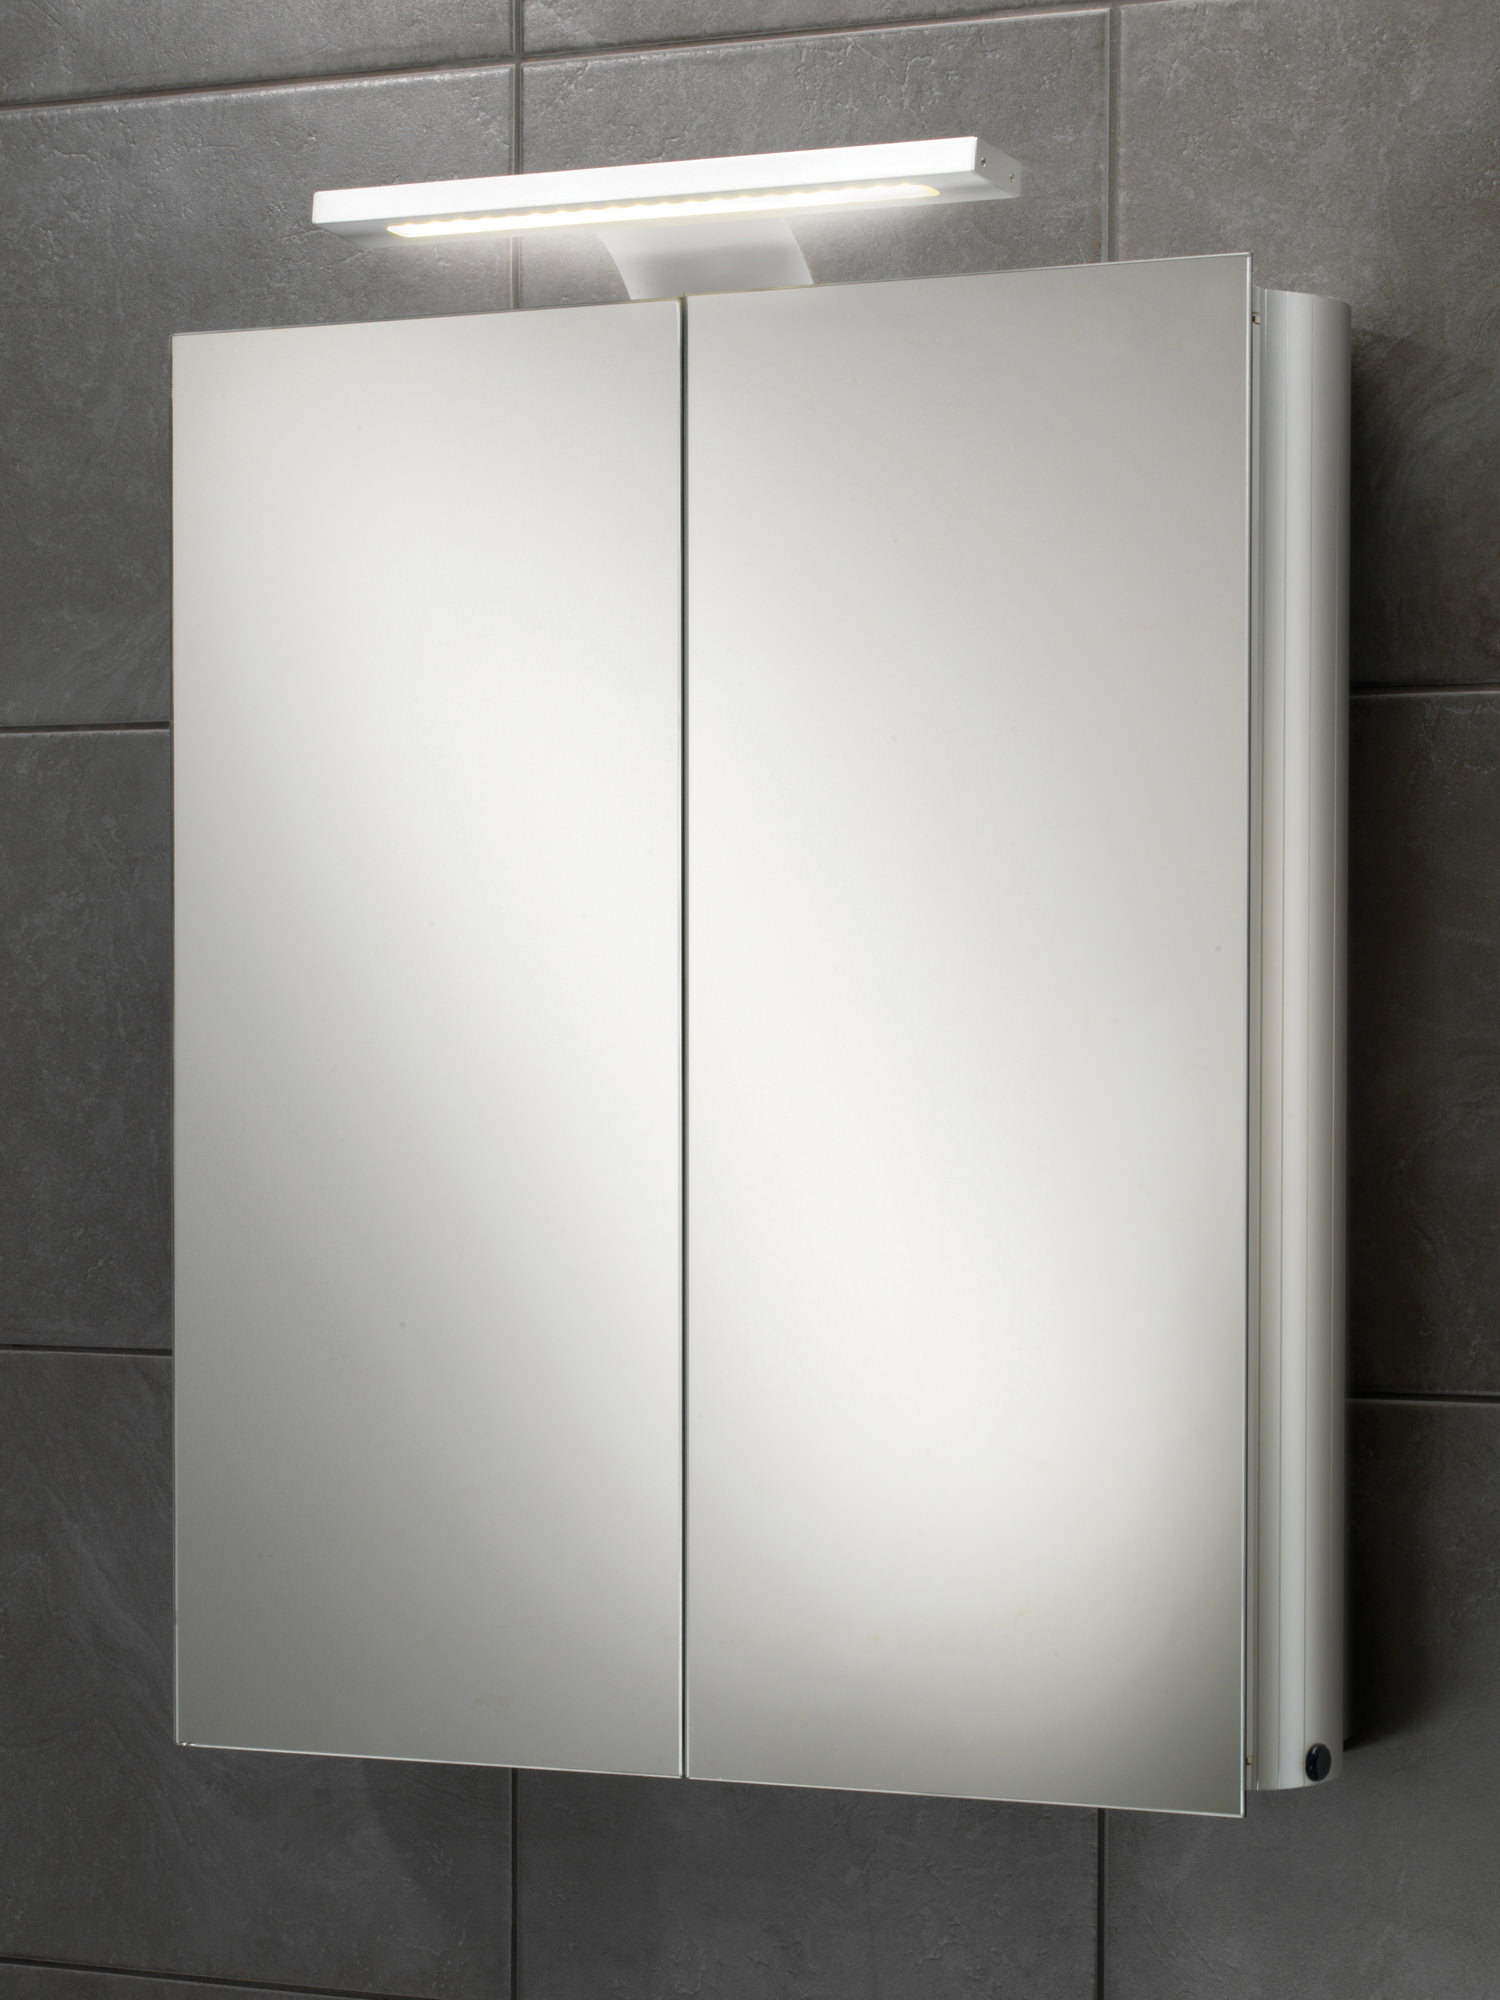 Hib Atomic Led Illuminated Double Door Aluminium Mirrored Cabinet 42700